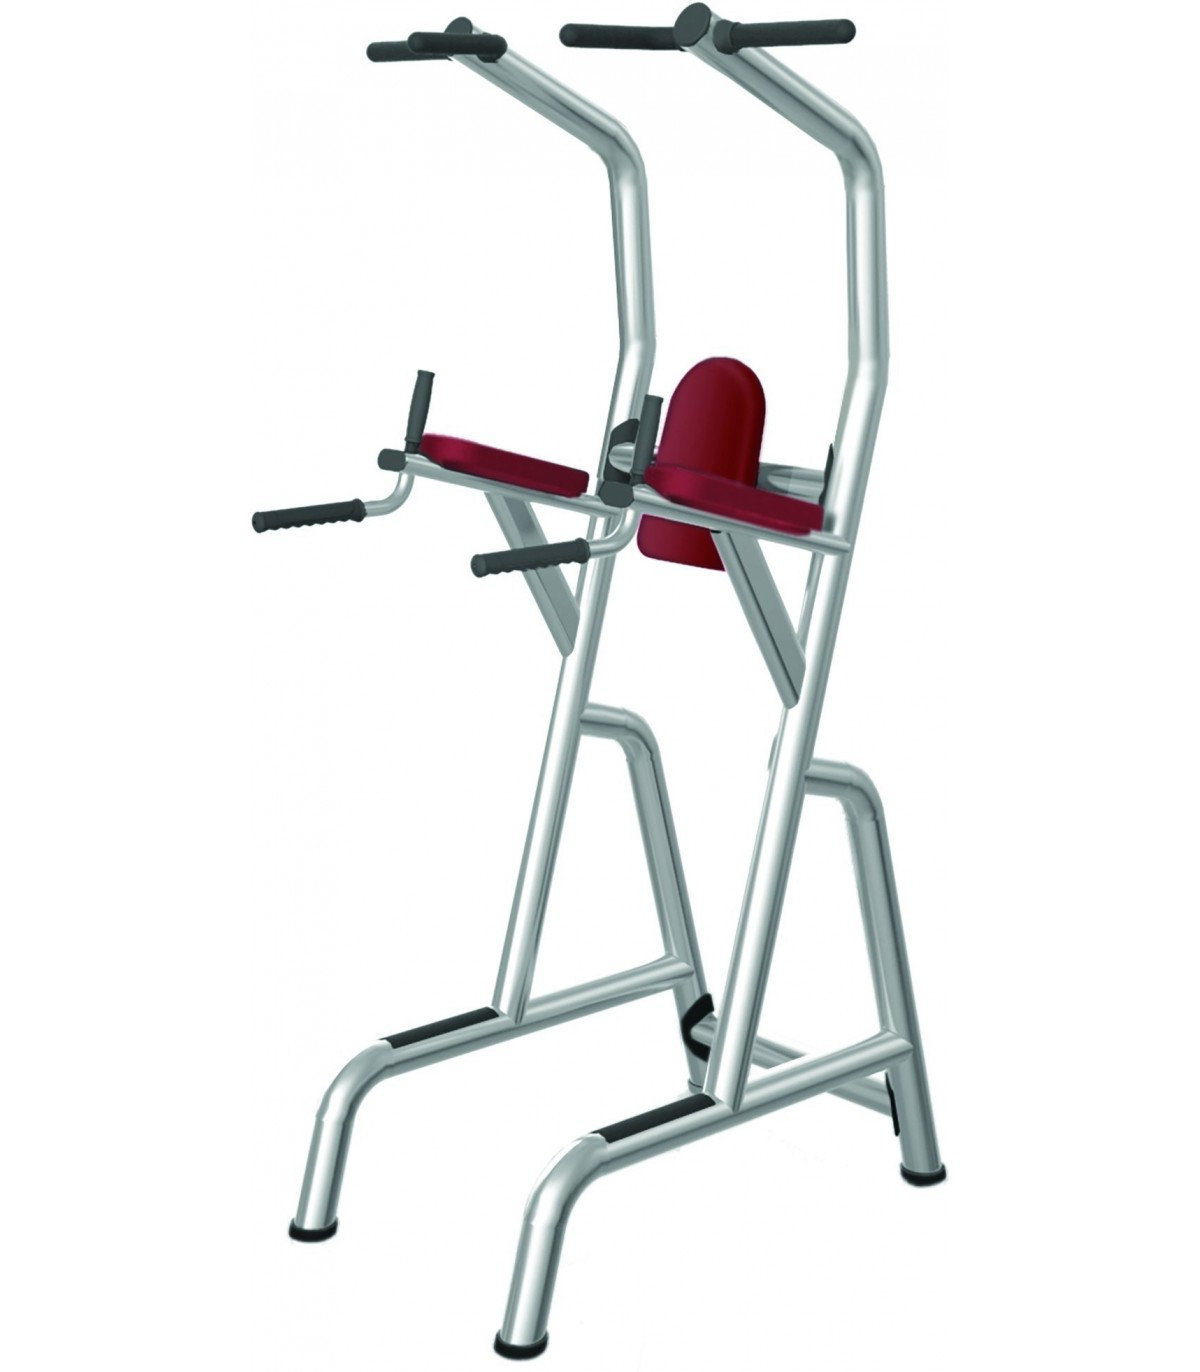 Achat Chaise Romaine Presse De Musculation Professionnelle Chaise Romaine Care Fitness